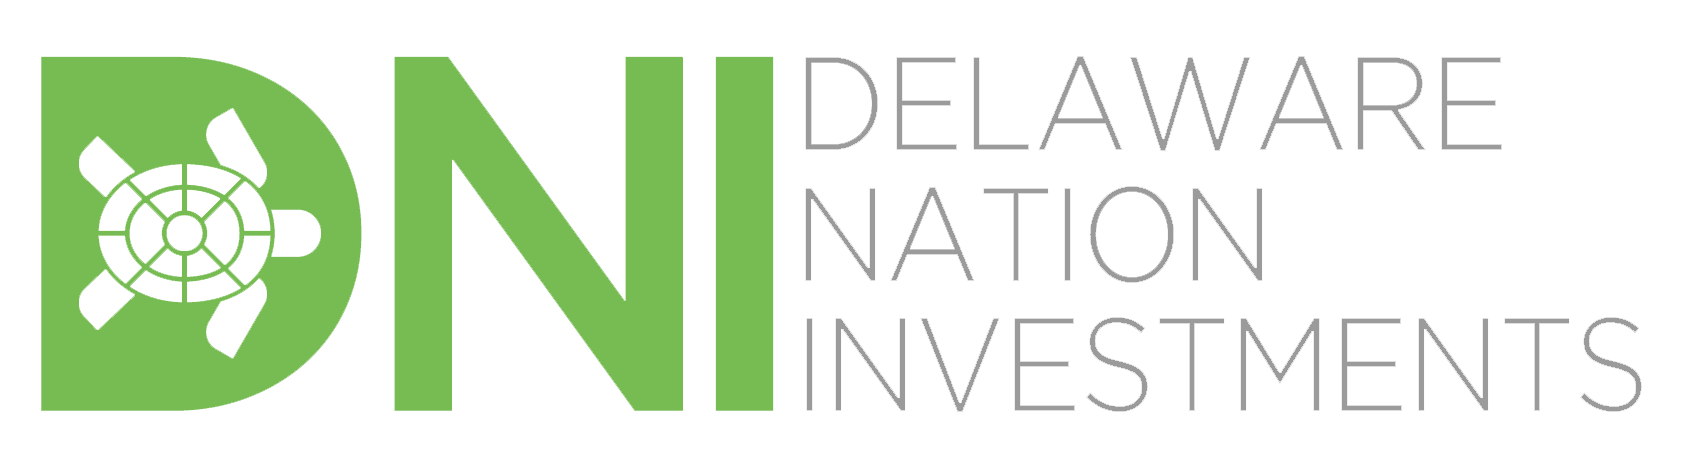 Delaware Nation Investments